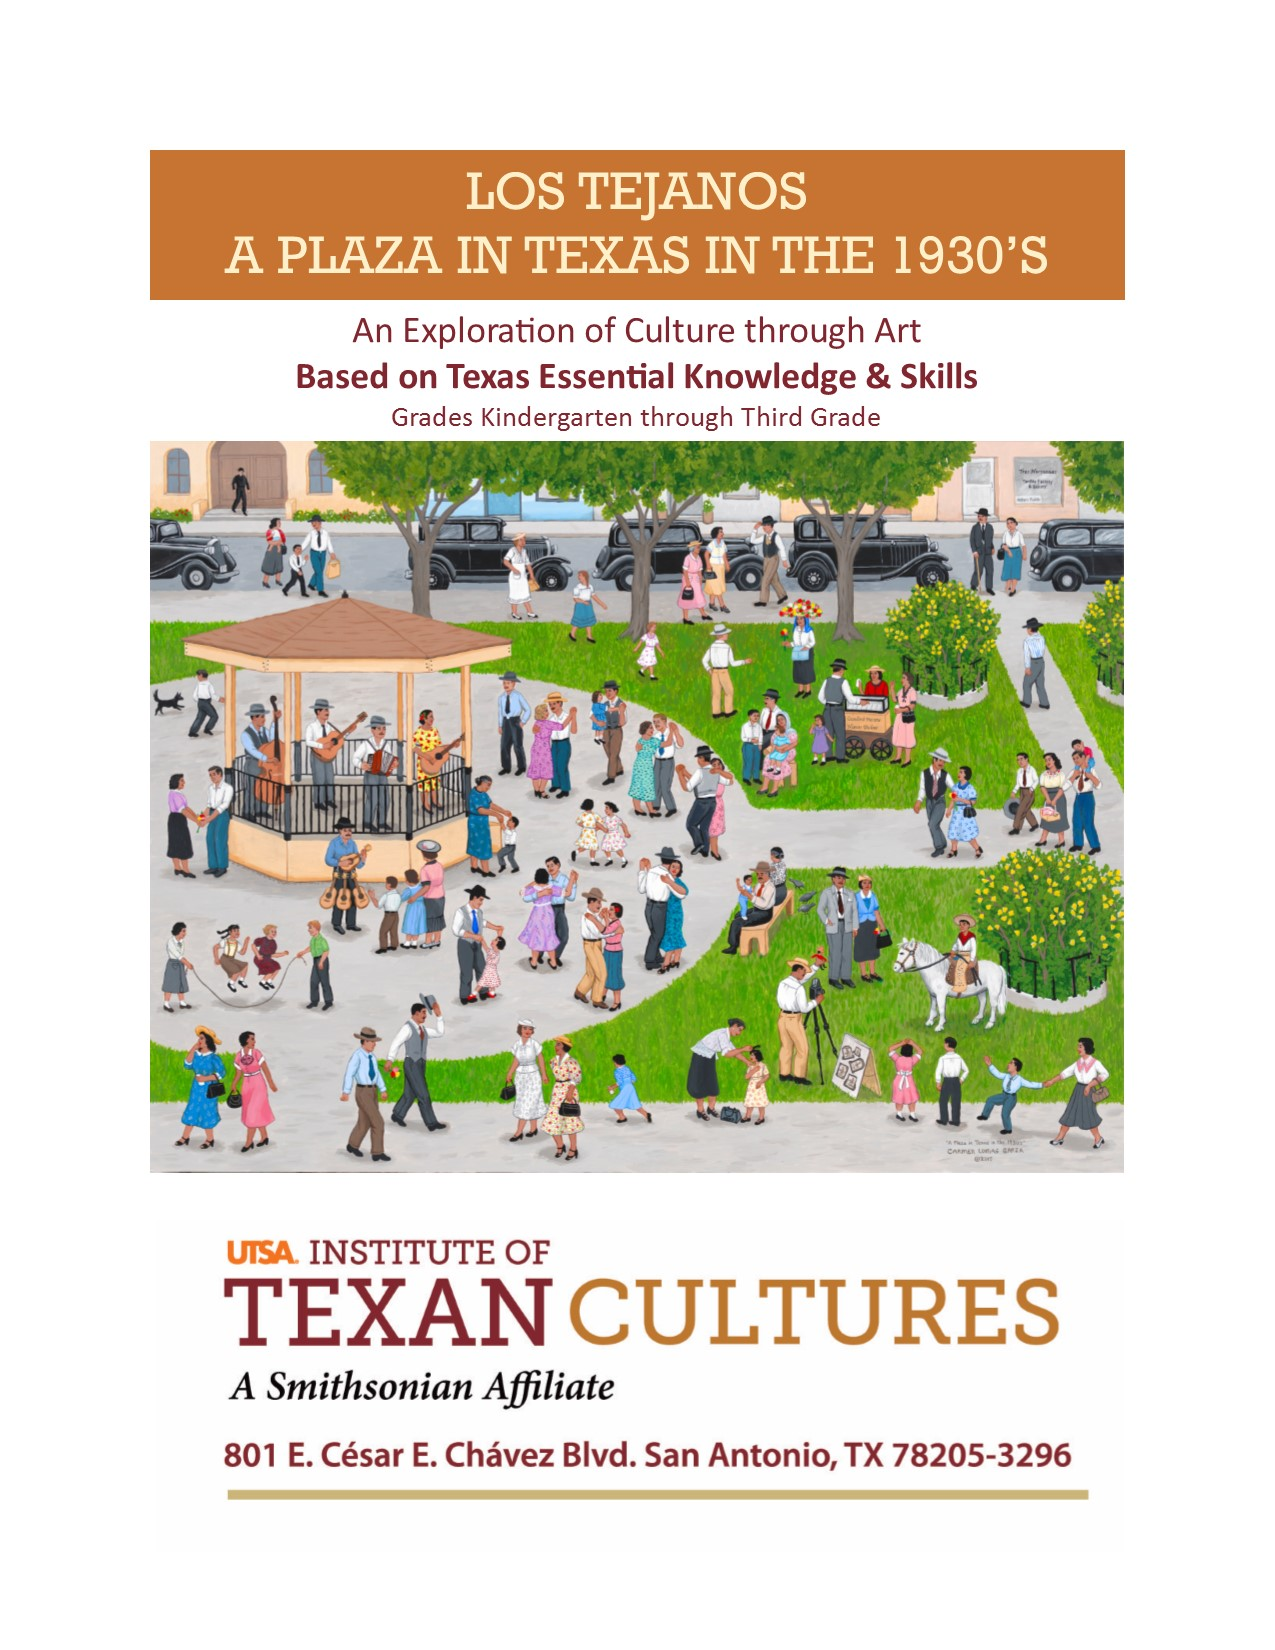 A Plaza in Texas in the 1930s: An Exploration of Culture through Art | UTSA Institute Of Texan Cultures